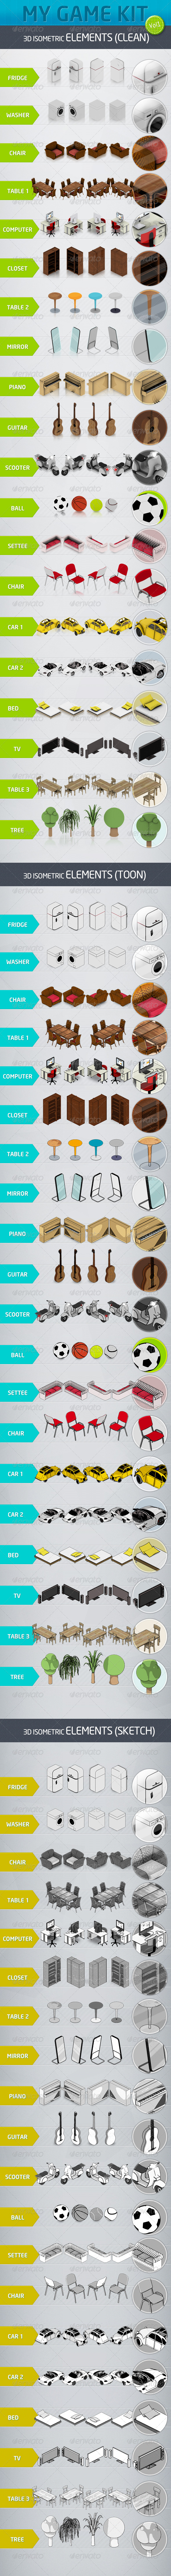 GraphicRiver Mygame 3D Isometric Kit Vol.1 4538492